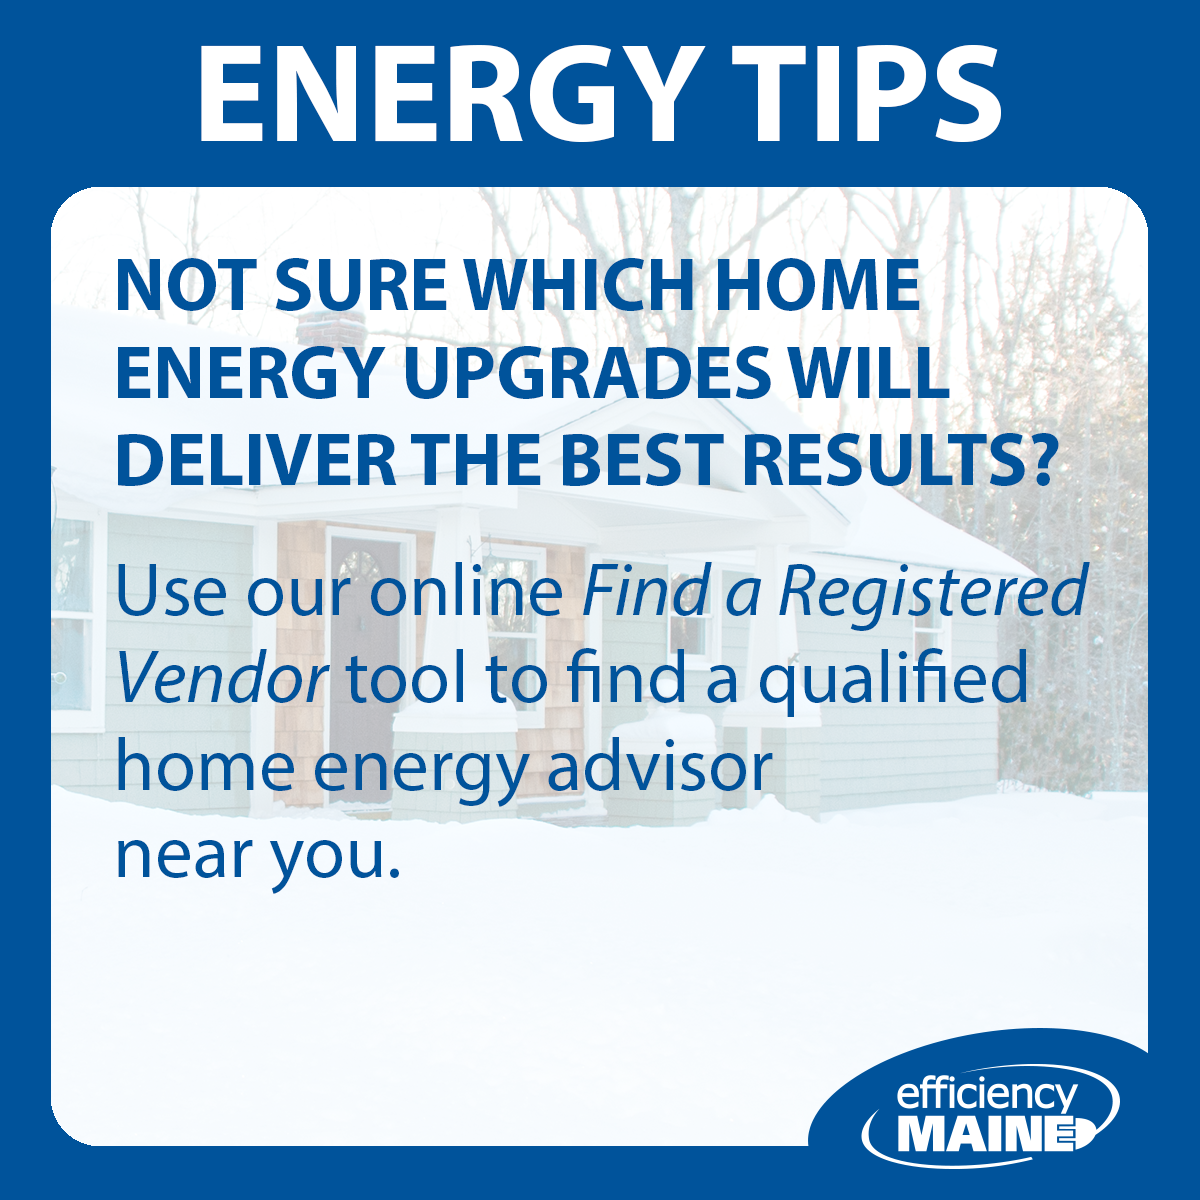 Find an Energy Advisor